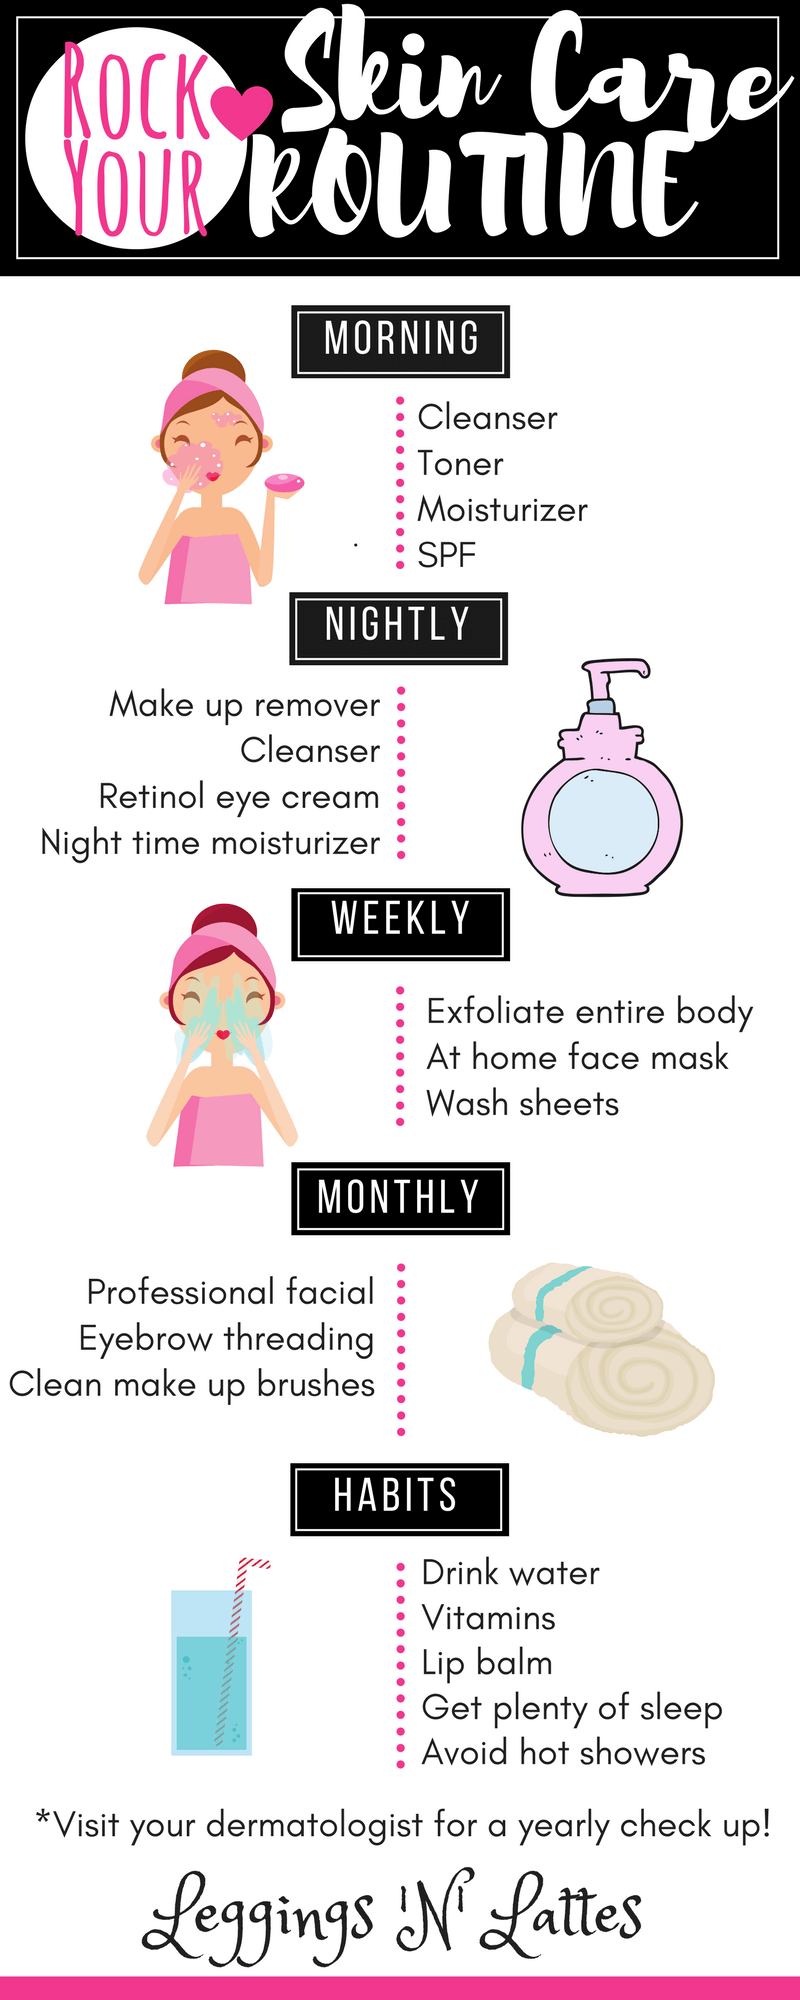 Rock Your Skin Care Routine Beauty tips for women, Skin